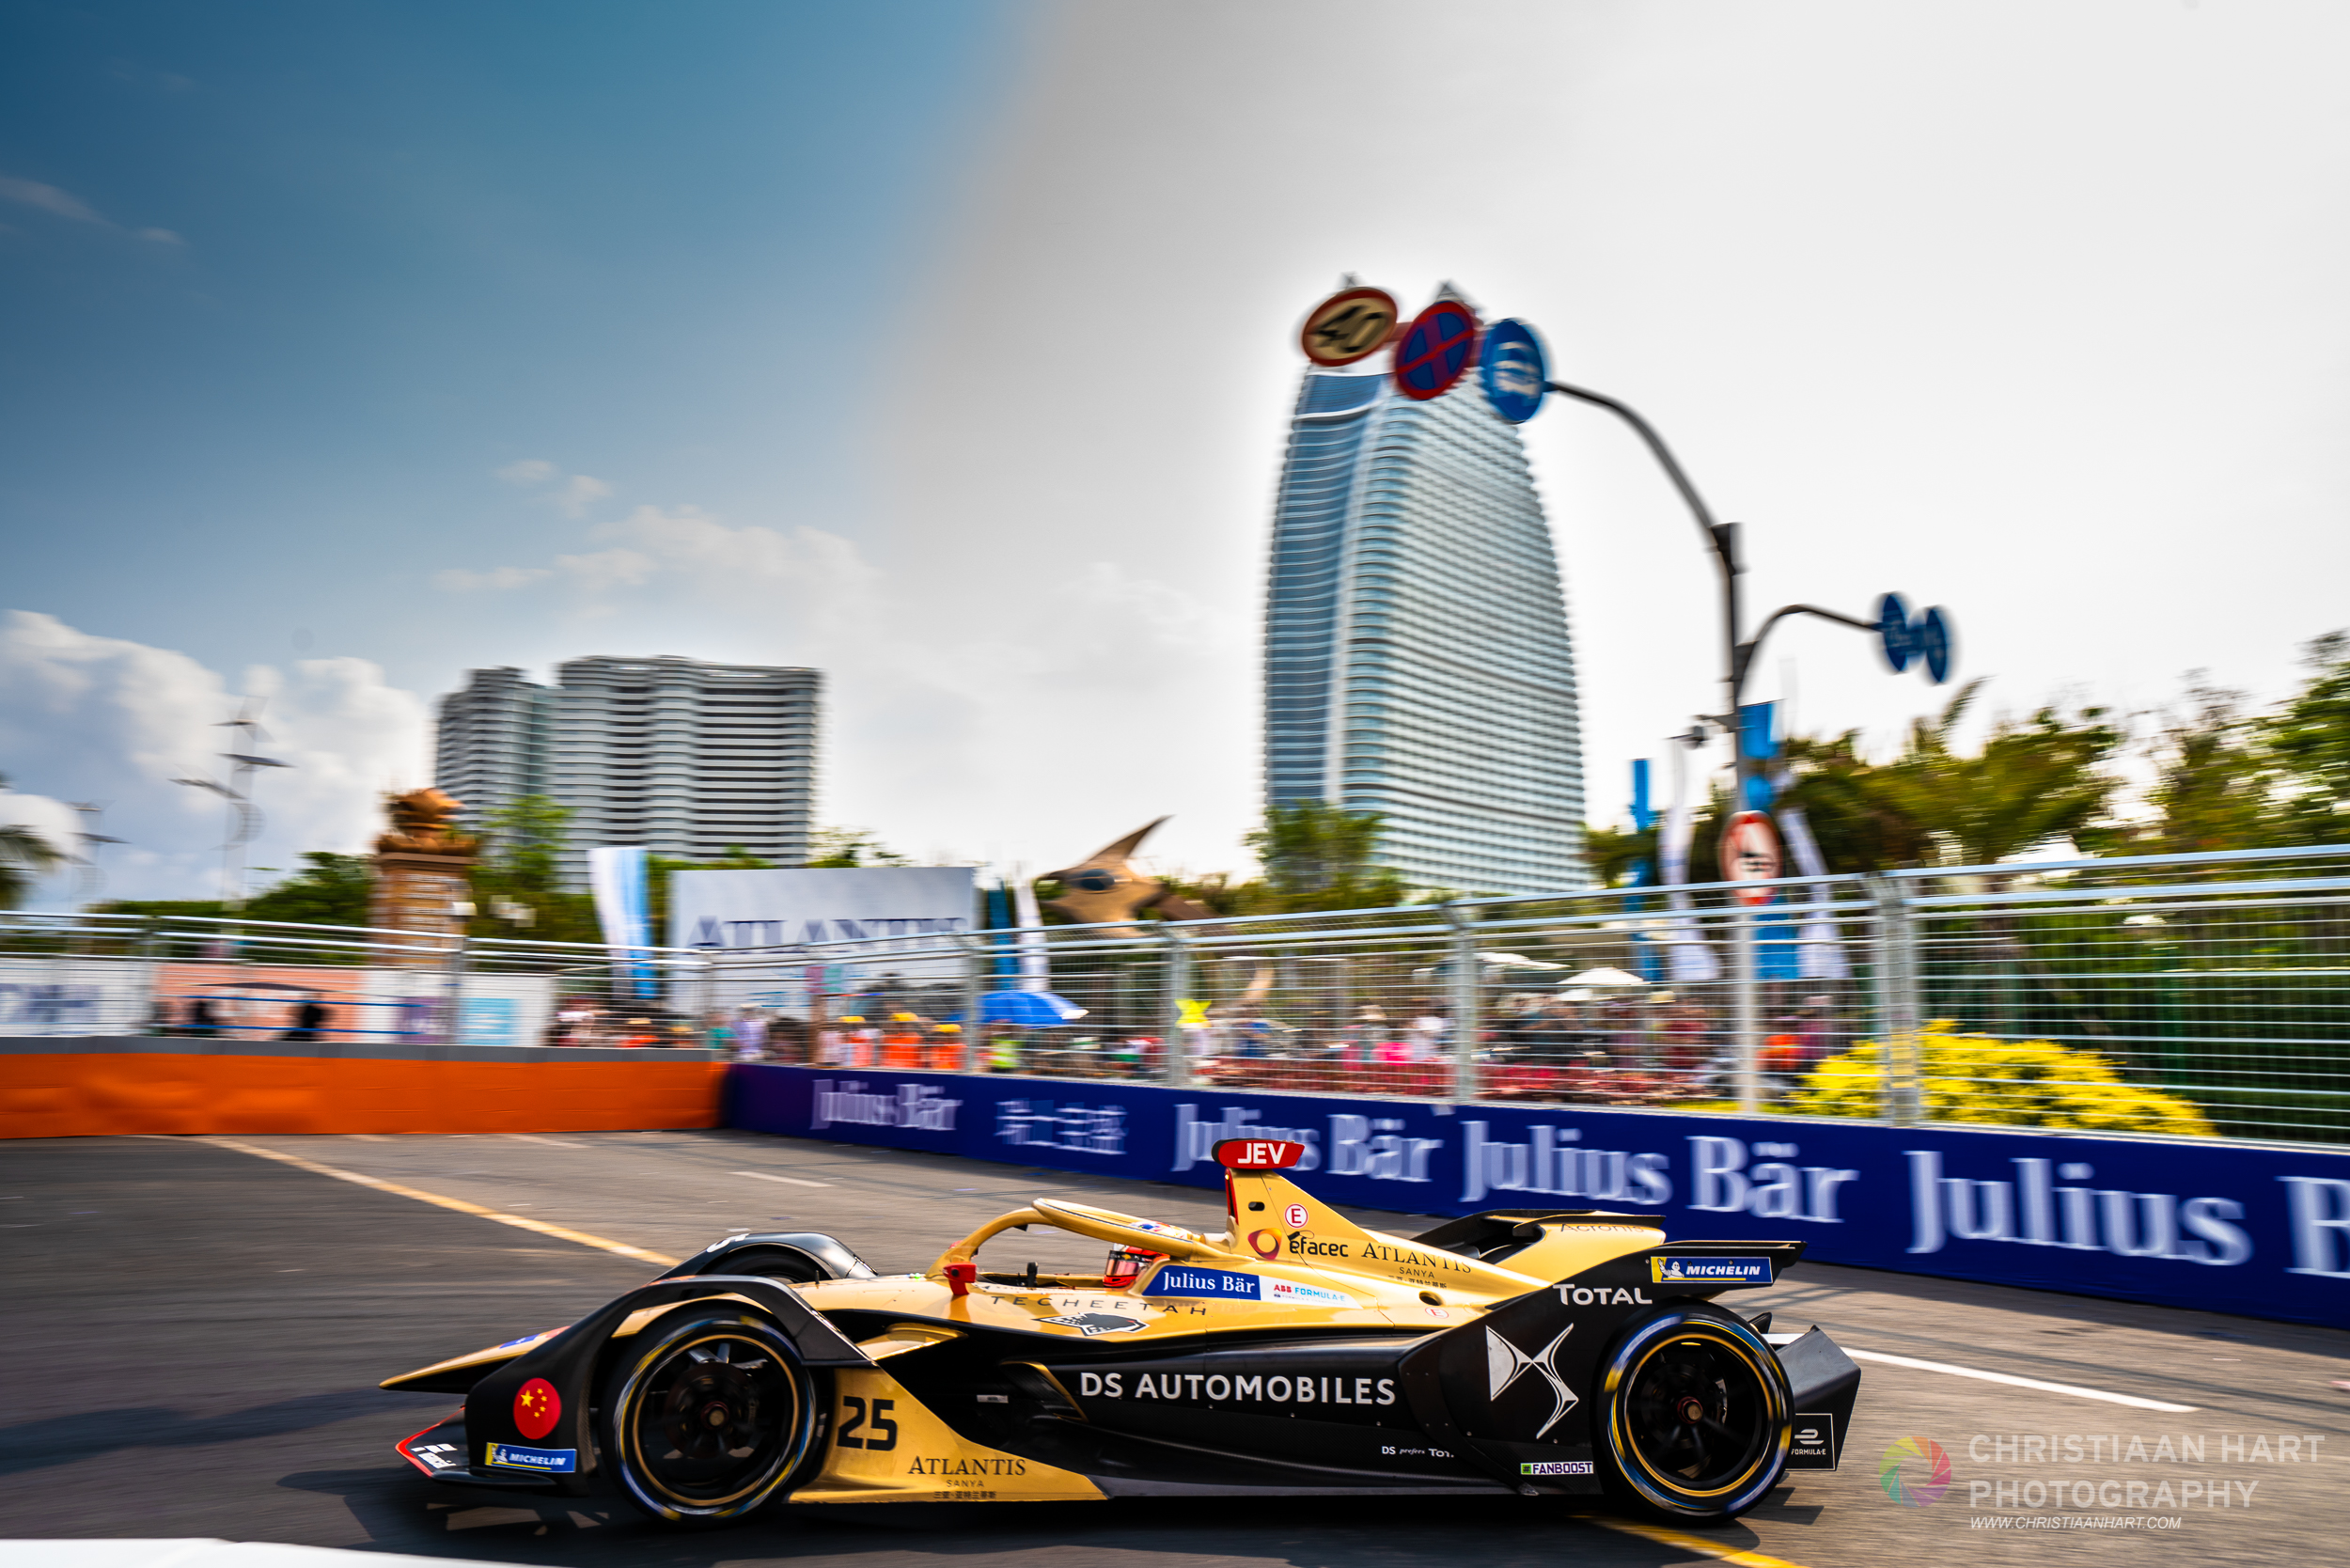 Jean Eric Vergne on his way to victory. A home win for team  DSTecheetah